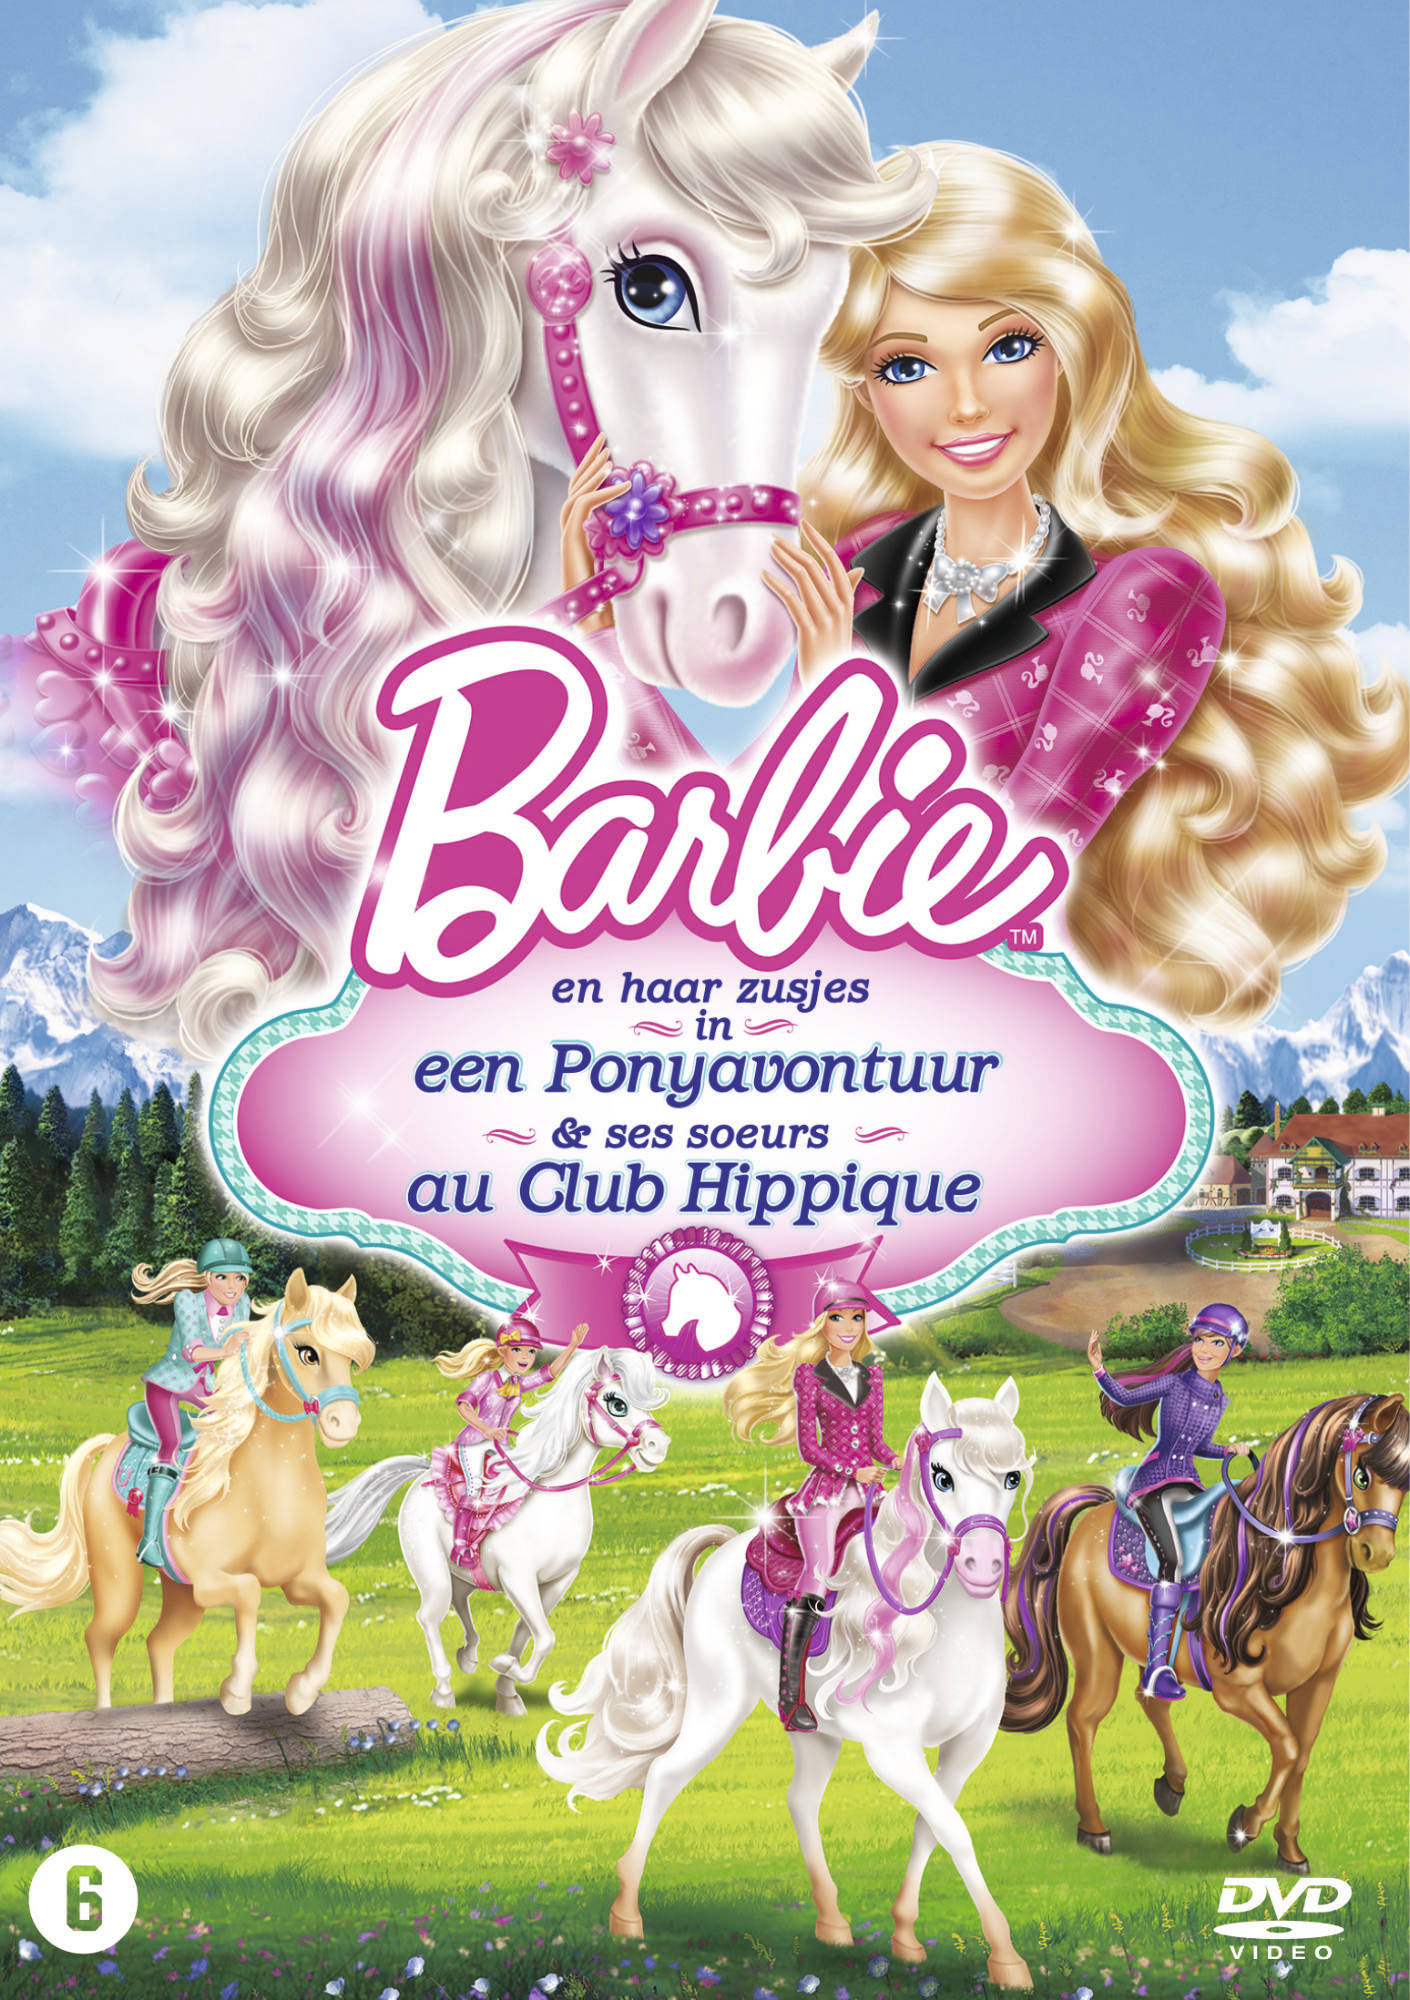 Barbie 26 barbie et ses s urs au club hippique en - Barbie club hippique ...